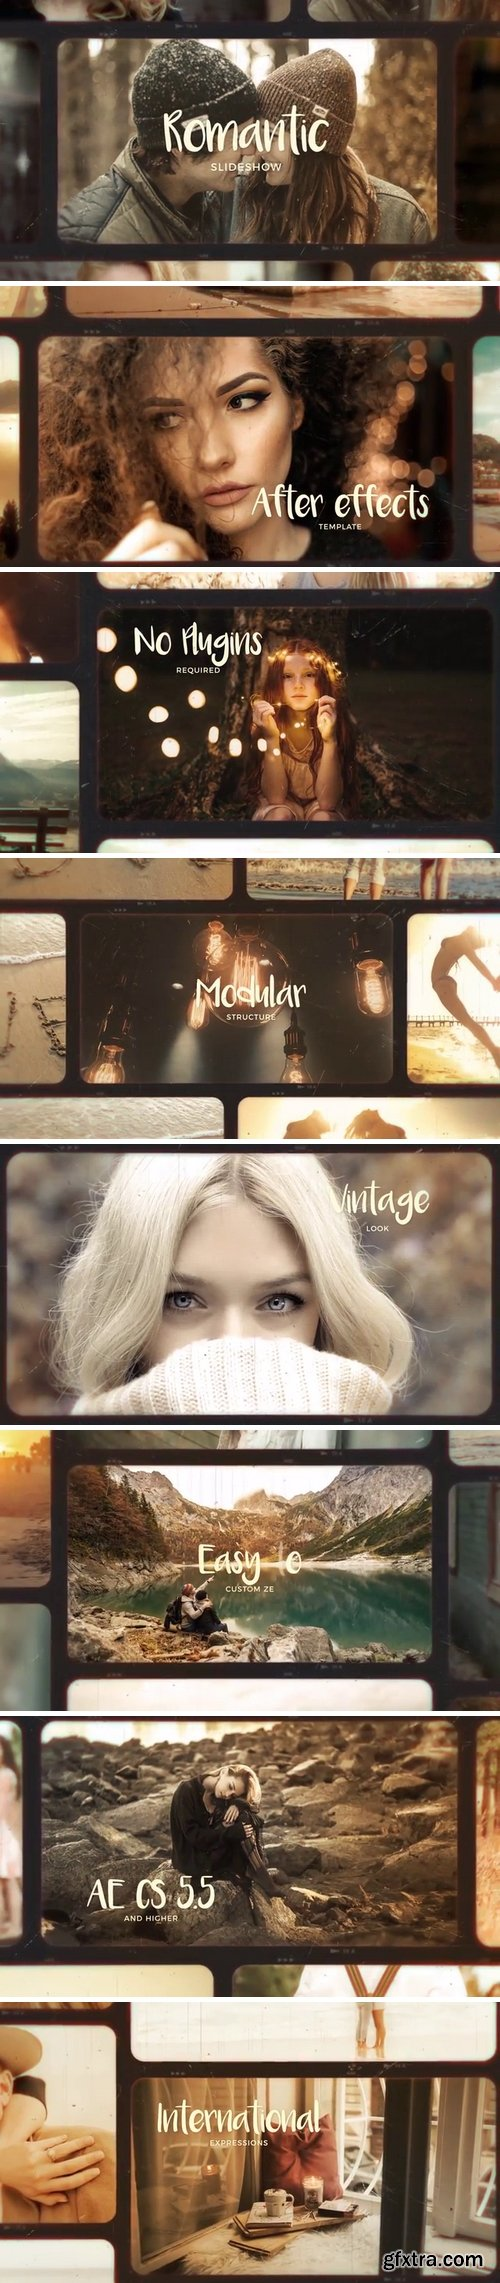 MotionArray - Romantic Photo Slideshow After Effects Templates 61116